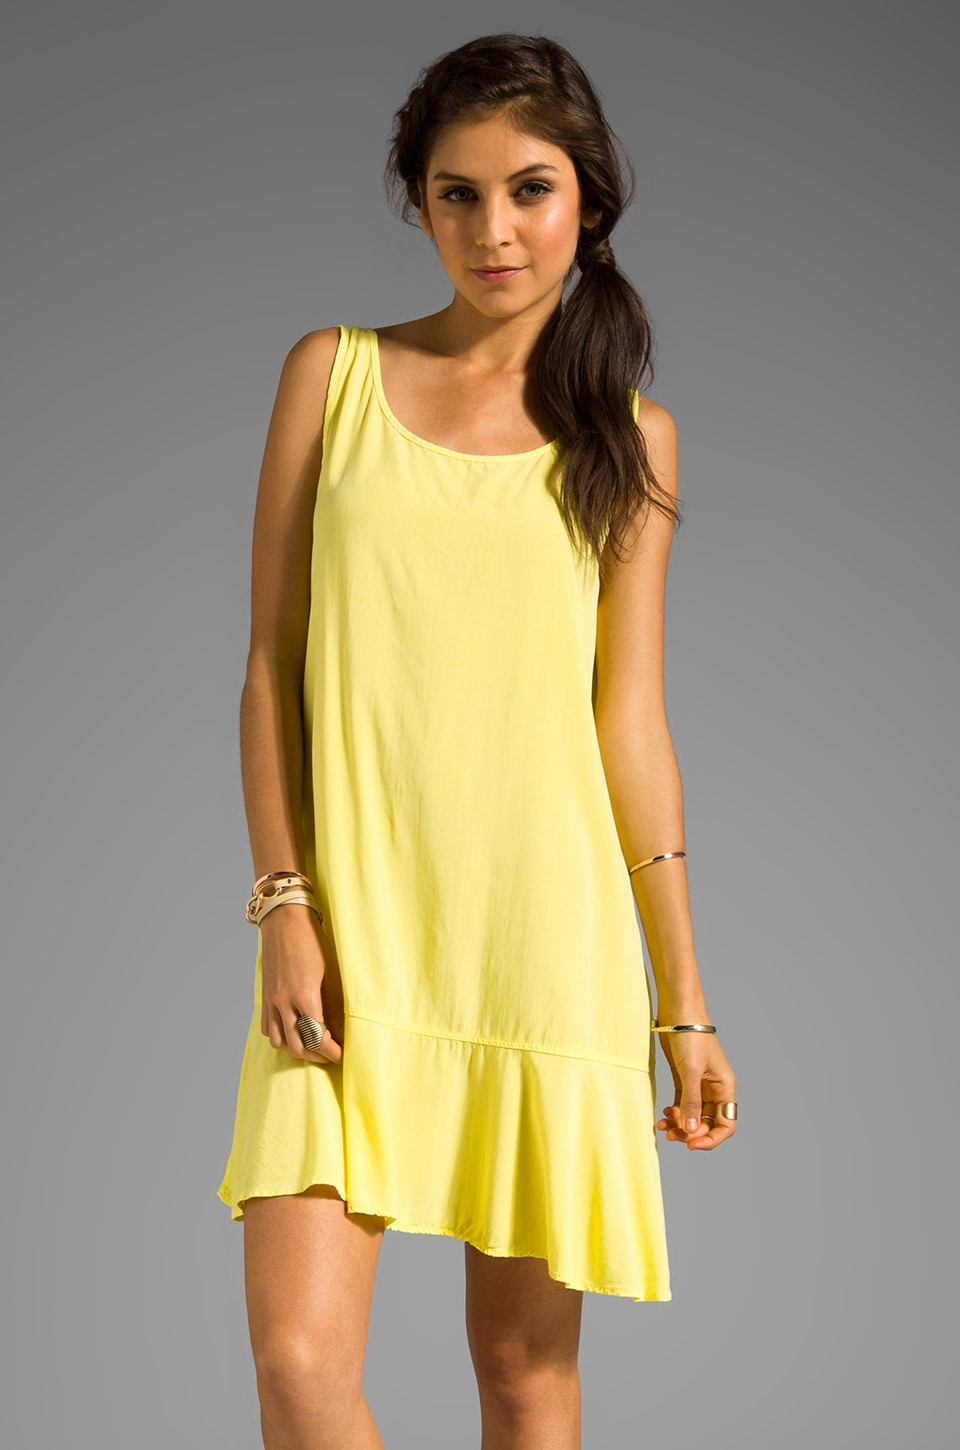 SAM&LAVI Adorina Dress in Light Yellow